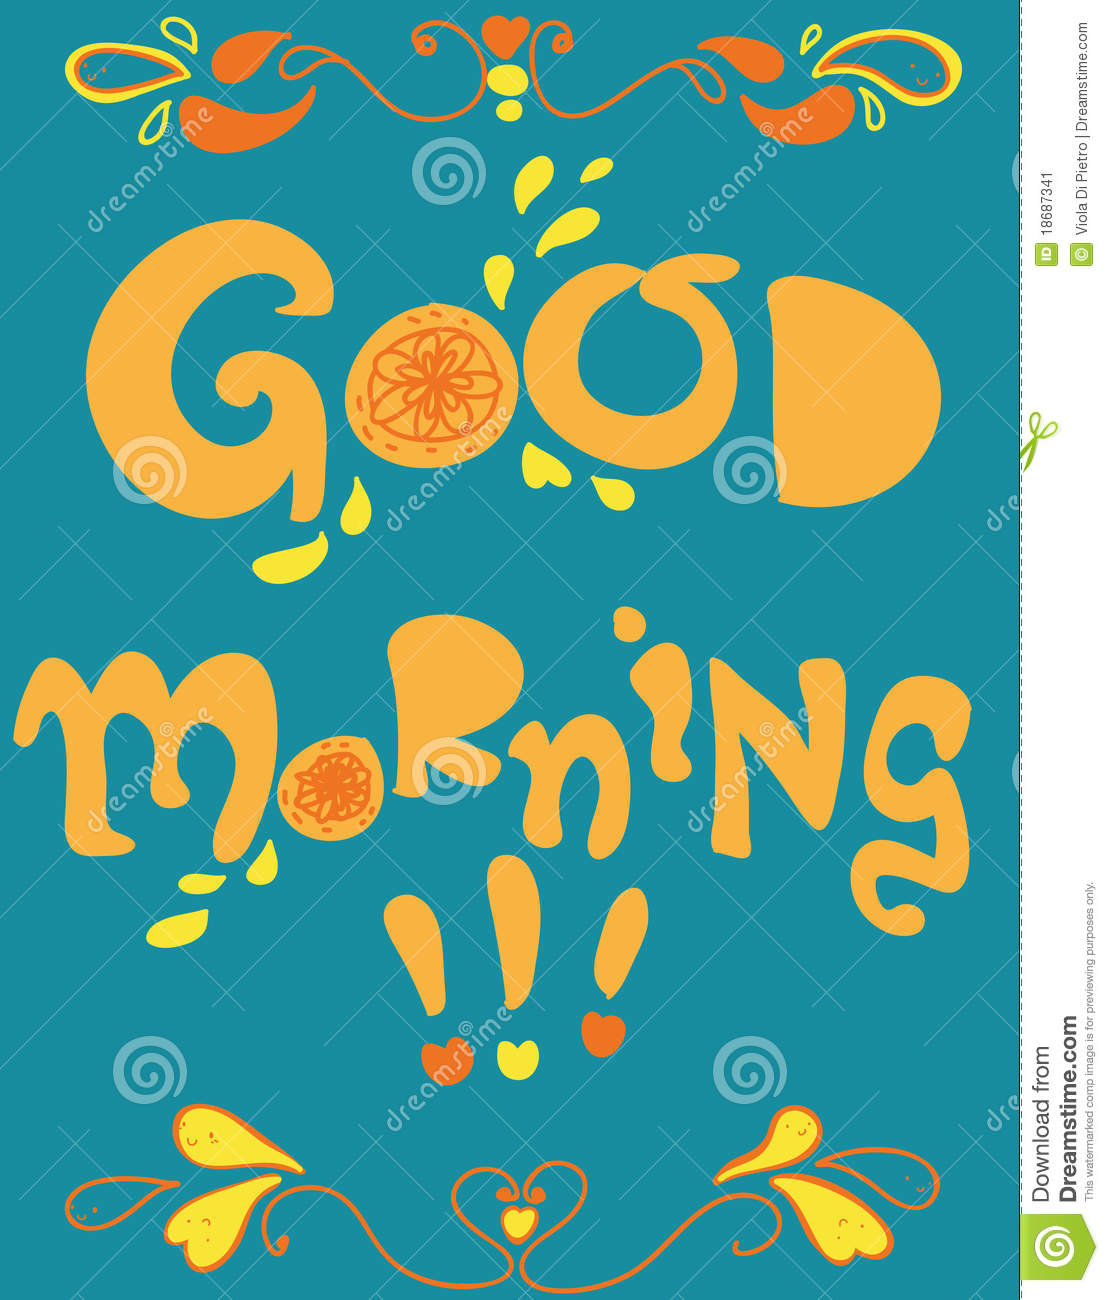 Good Morning Cartoon Card Stock Vector Illustration Of Colorful